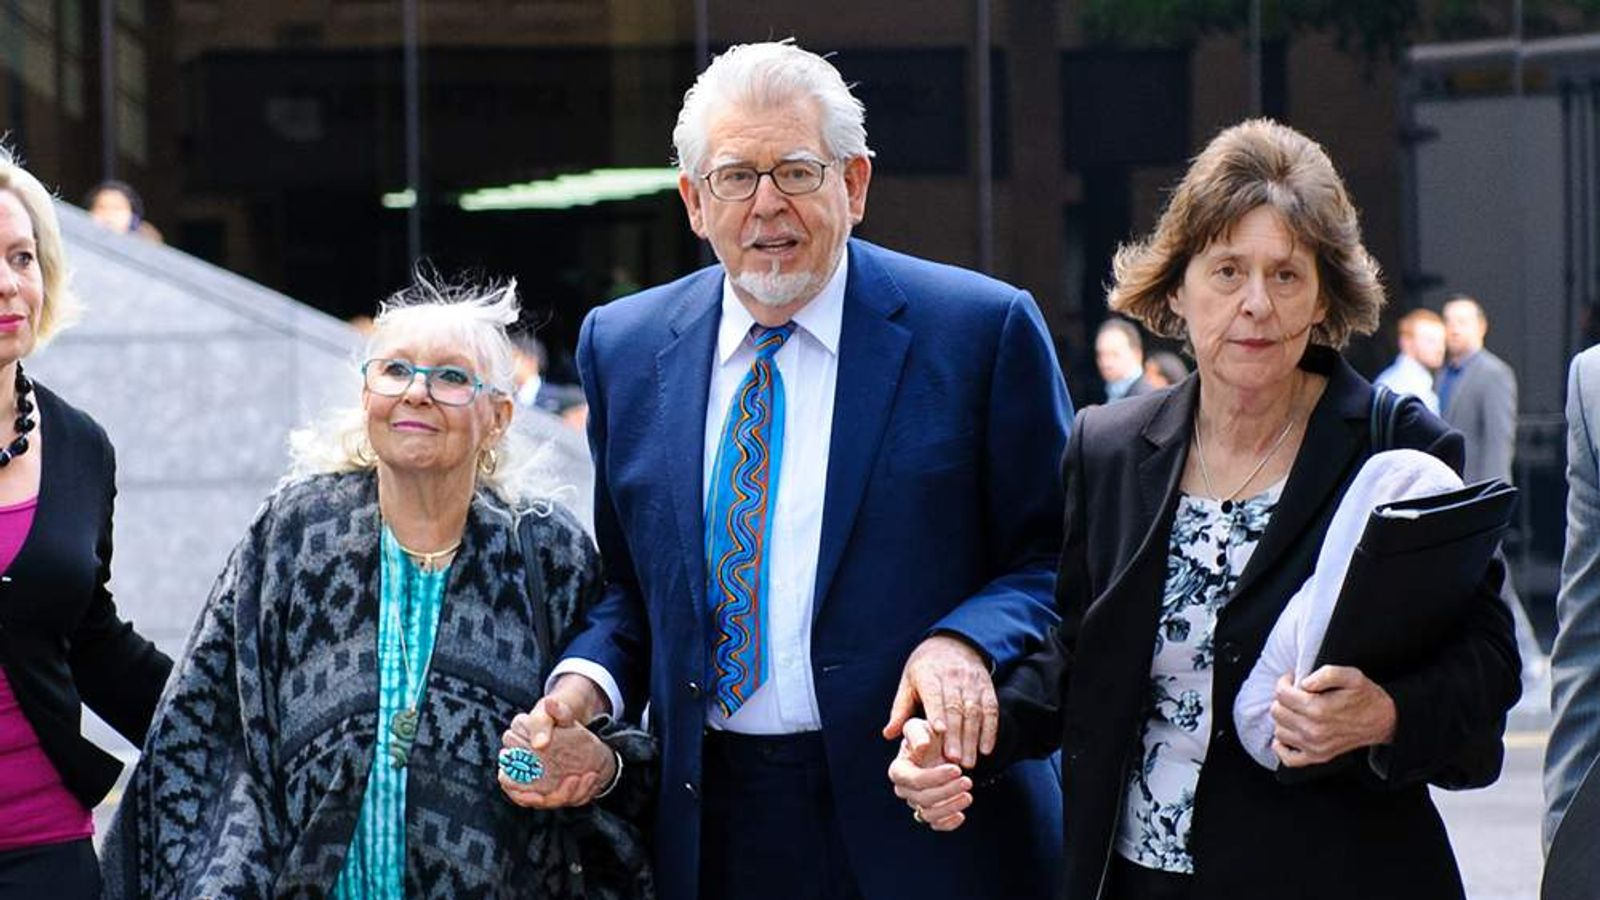 Rolf Harris Appears At Southwark Crown Court